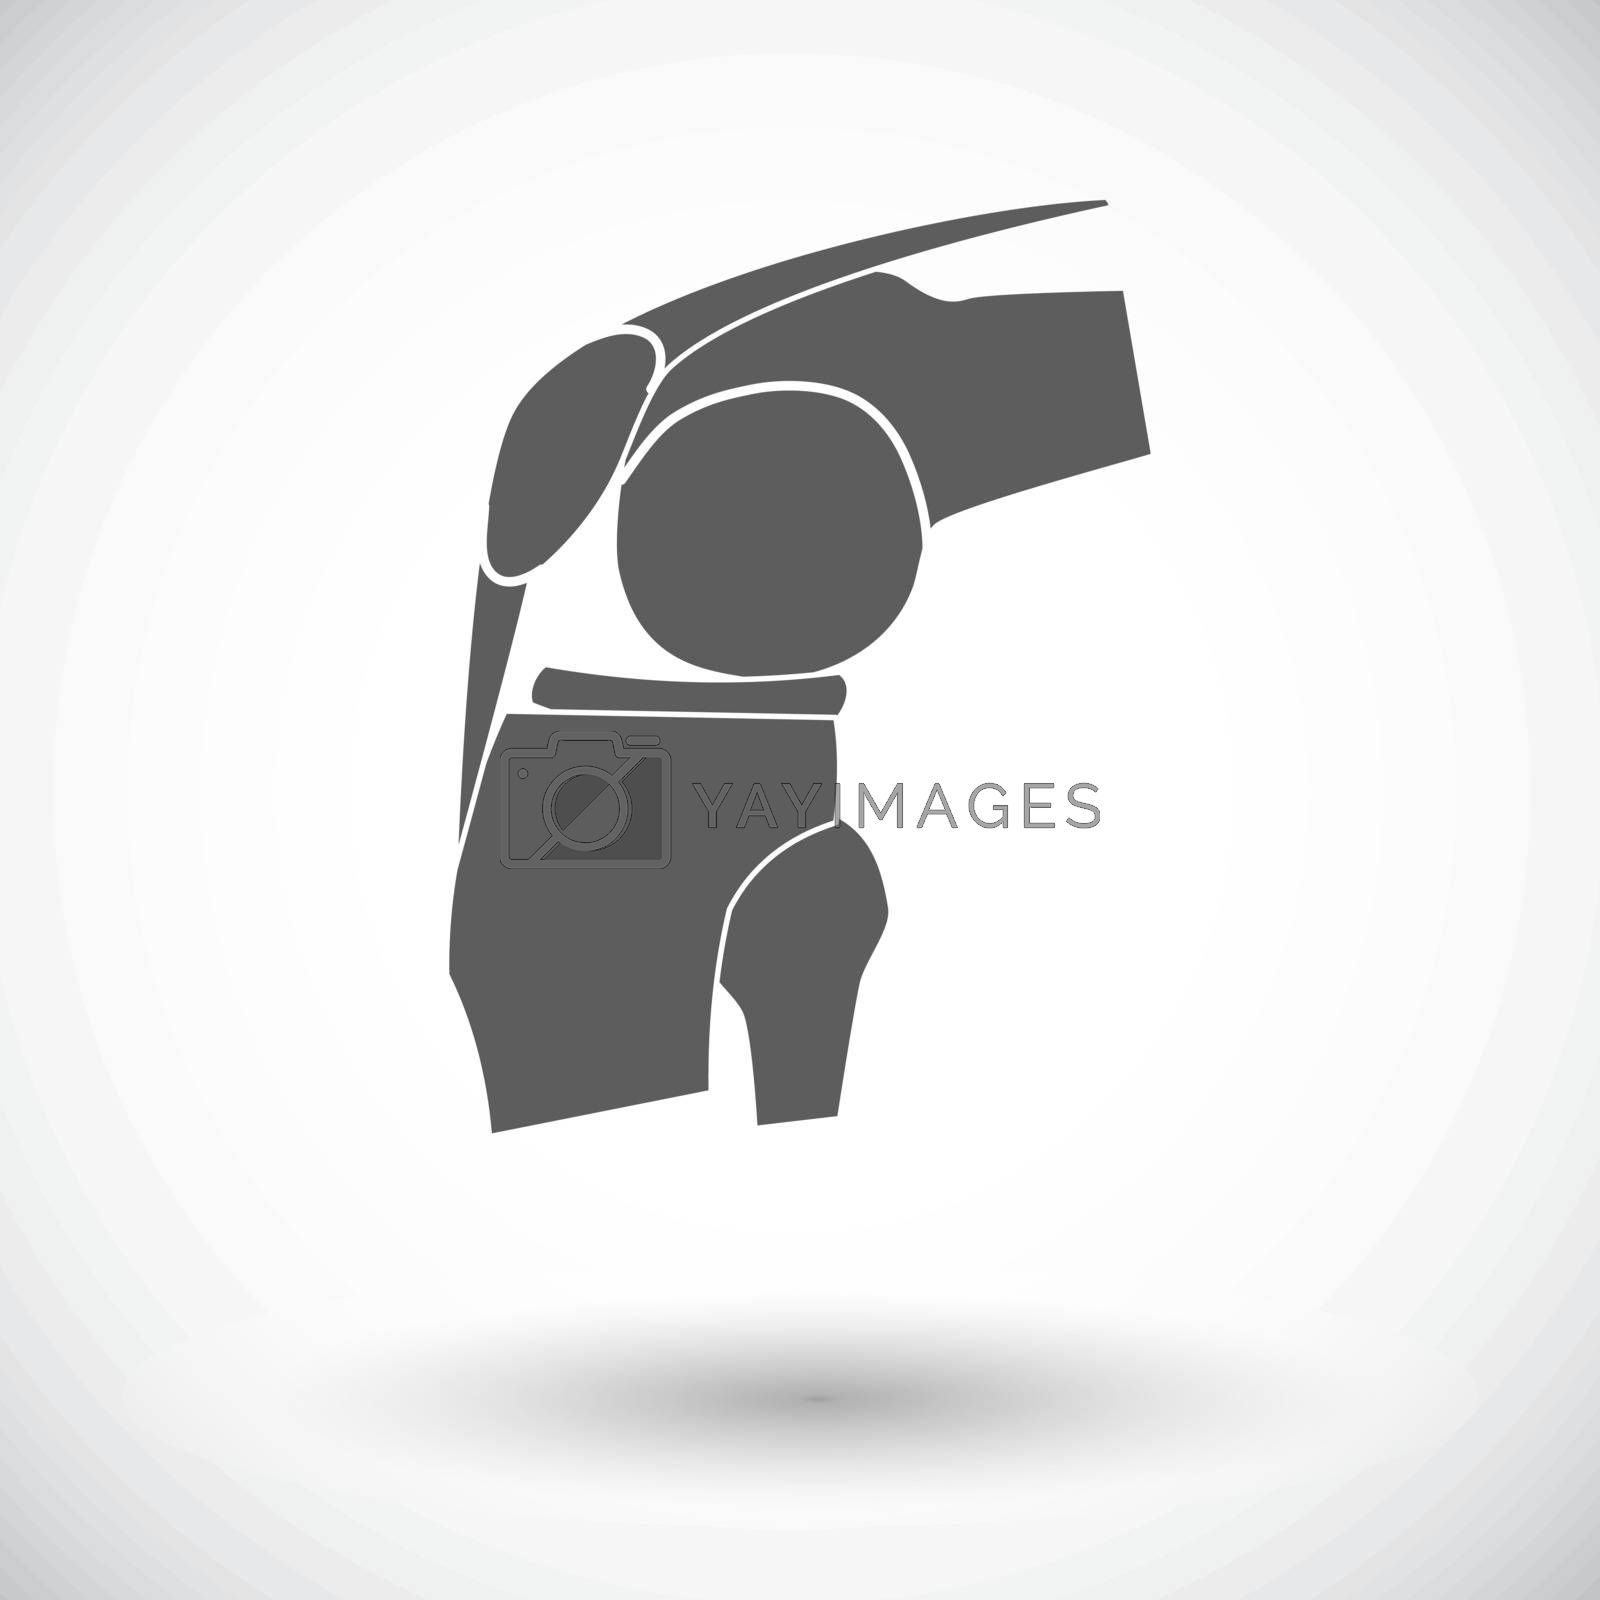 Joint. Single flat icon on white background. Vector illustration.